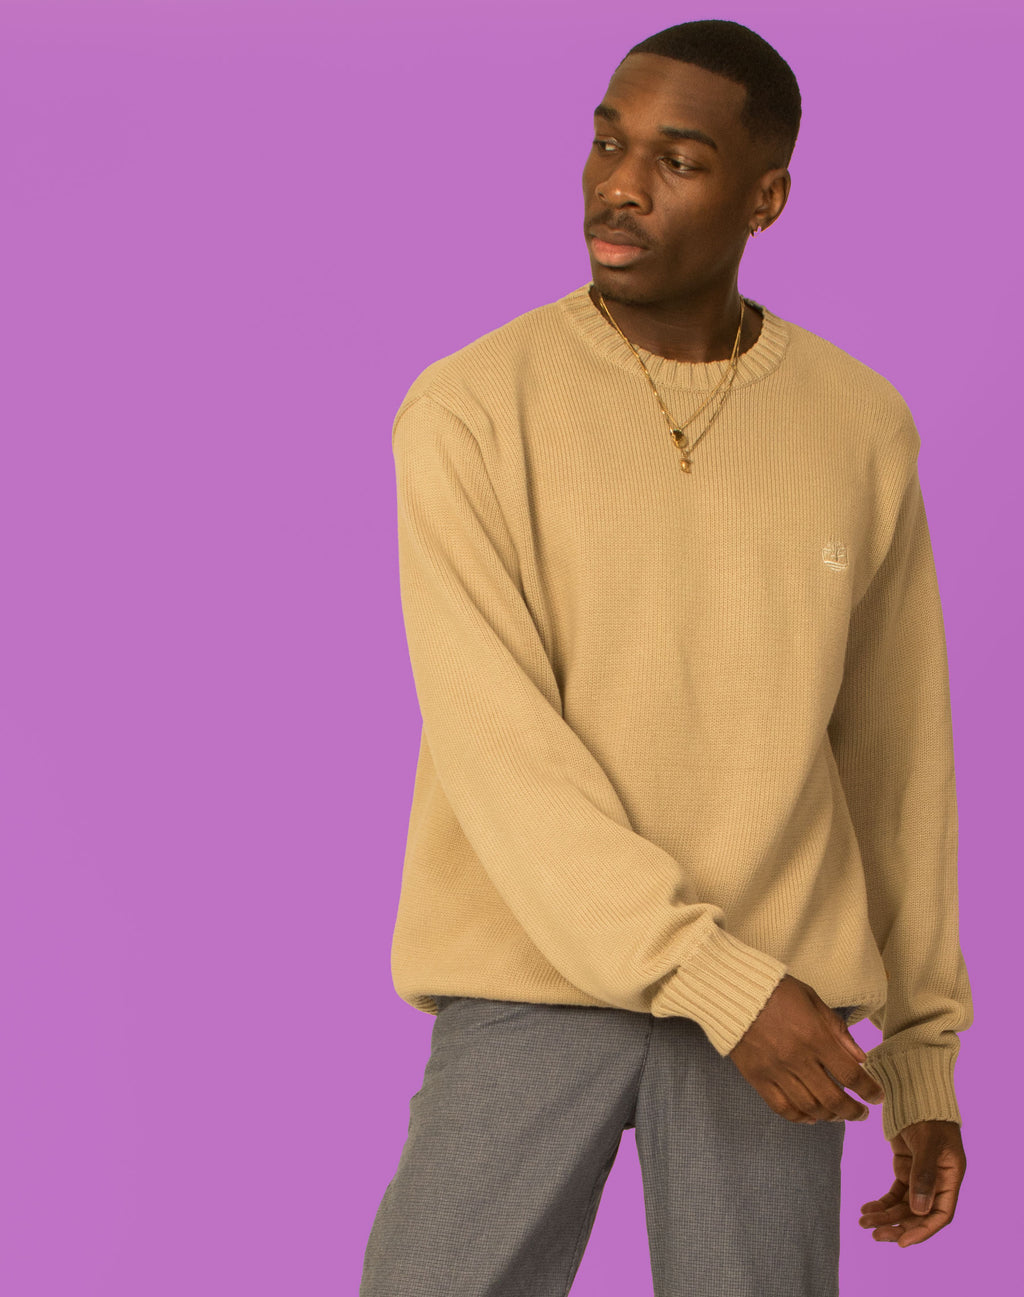 TIMBERLAND CREAM KNIT JUMPER